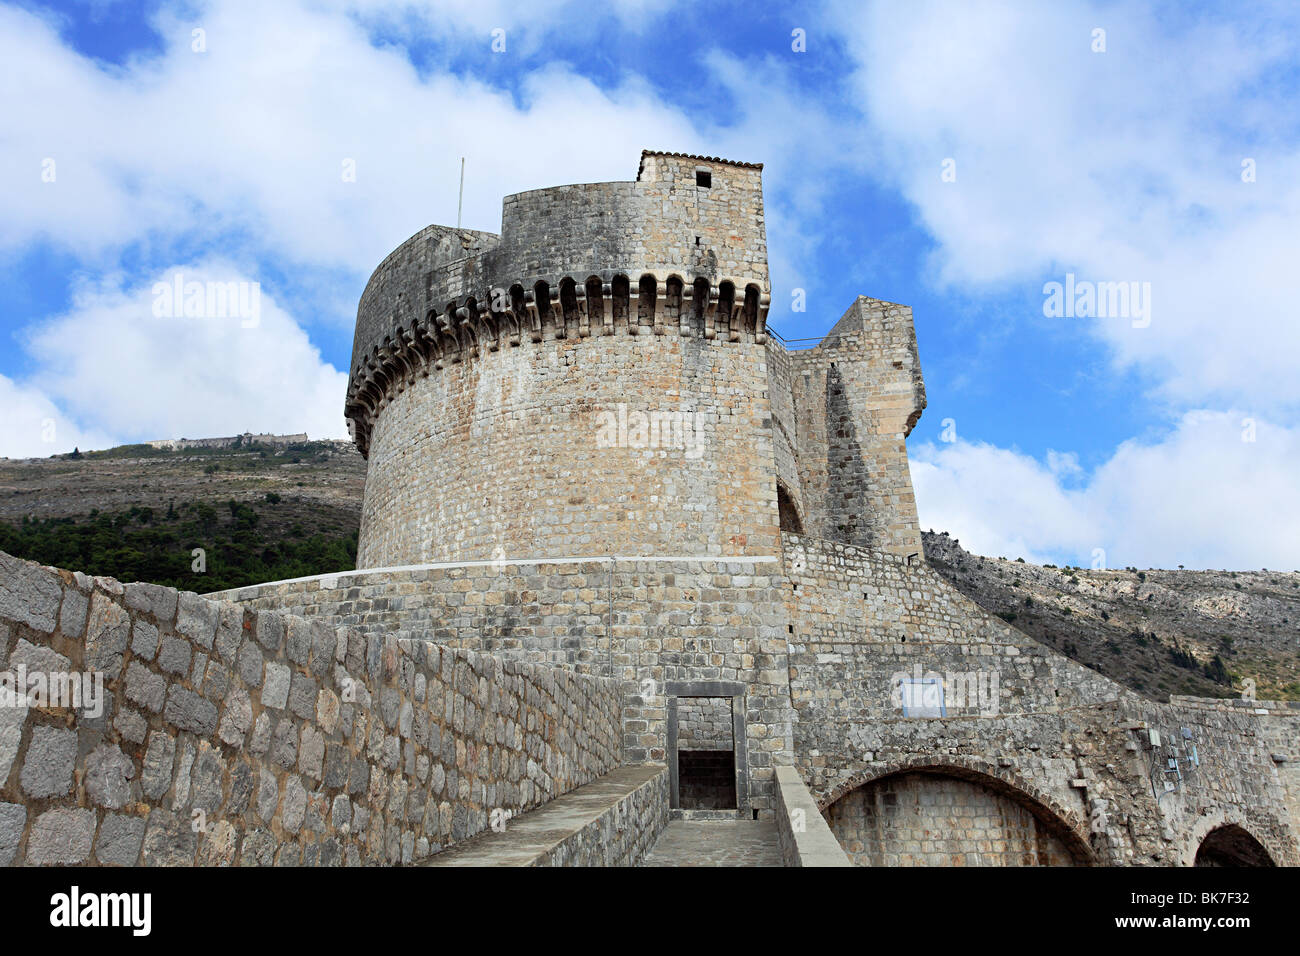 Minceta tower in dubrovnik fortress Stock Photo